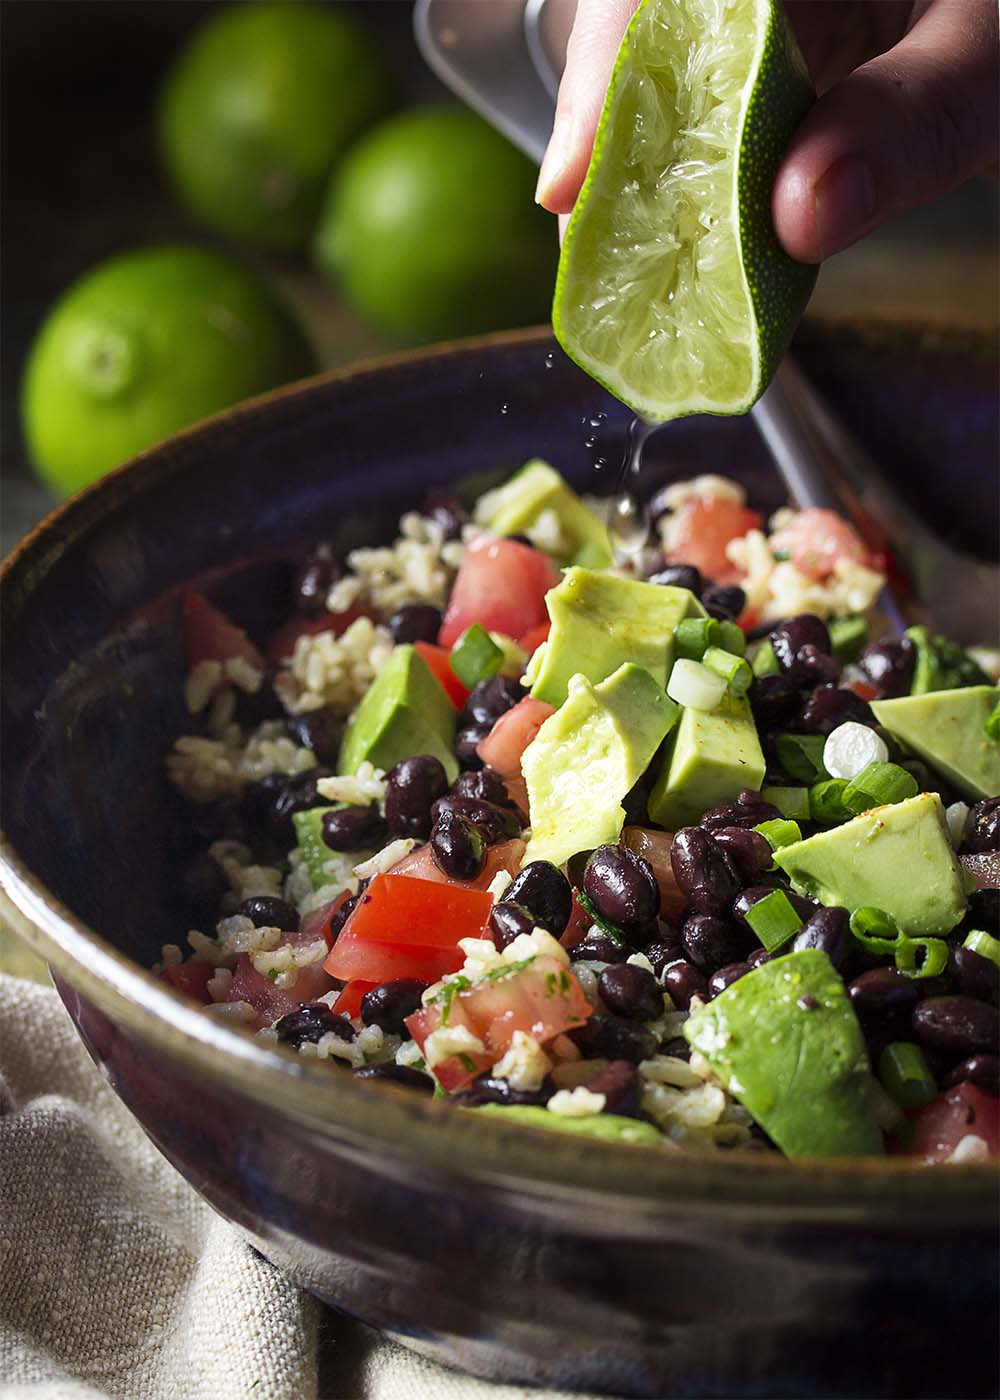 Squeezing a lime into a serving bowl of rice and black bean salad.